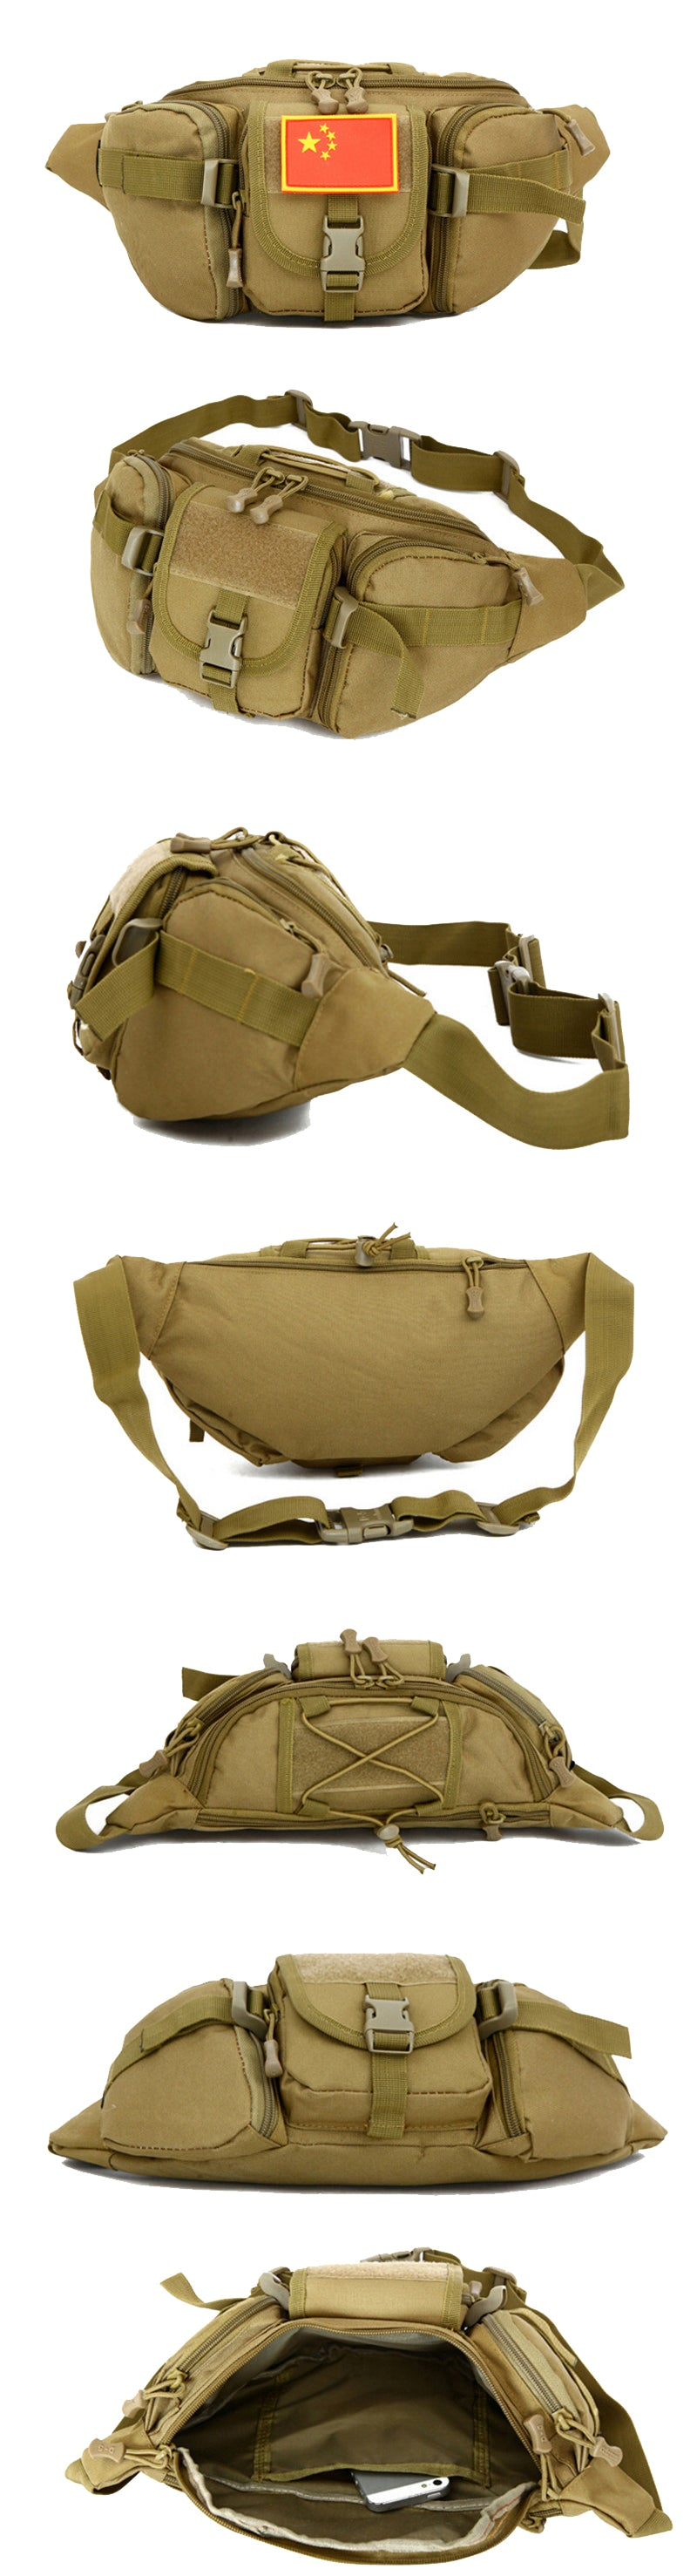 Tactical MOLLE Waist Pack Waterproof Belt Bag Fanny Pack Travel Bumbag Multi-Purpose Tool Belt Pack